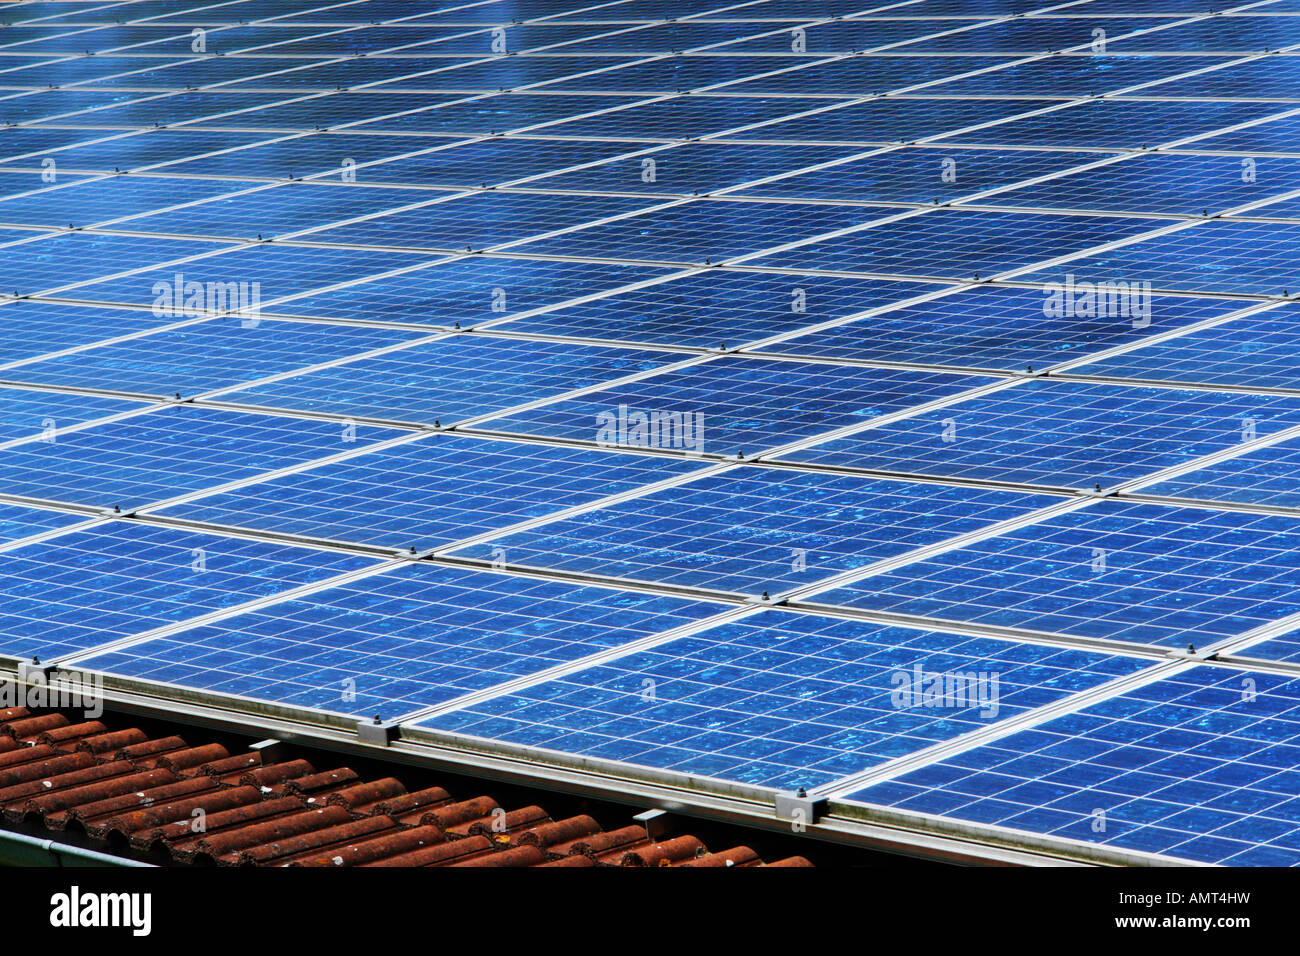 solar cells on roof - Stock Image